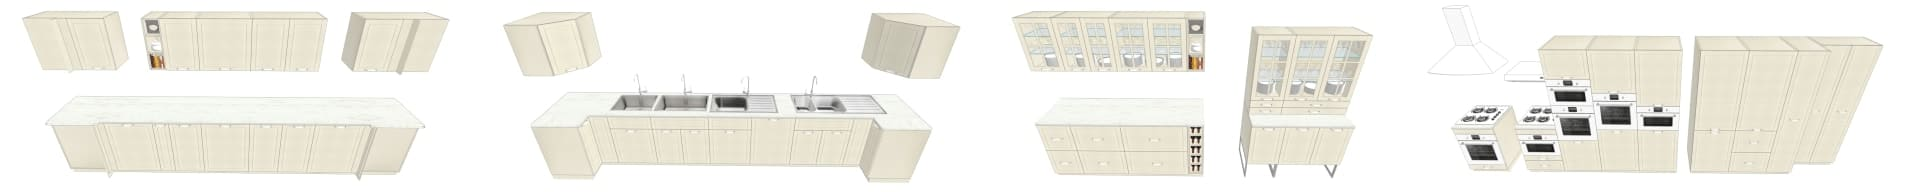 COLLECTION 3D IKEA BODBYN BLANC